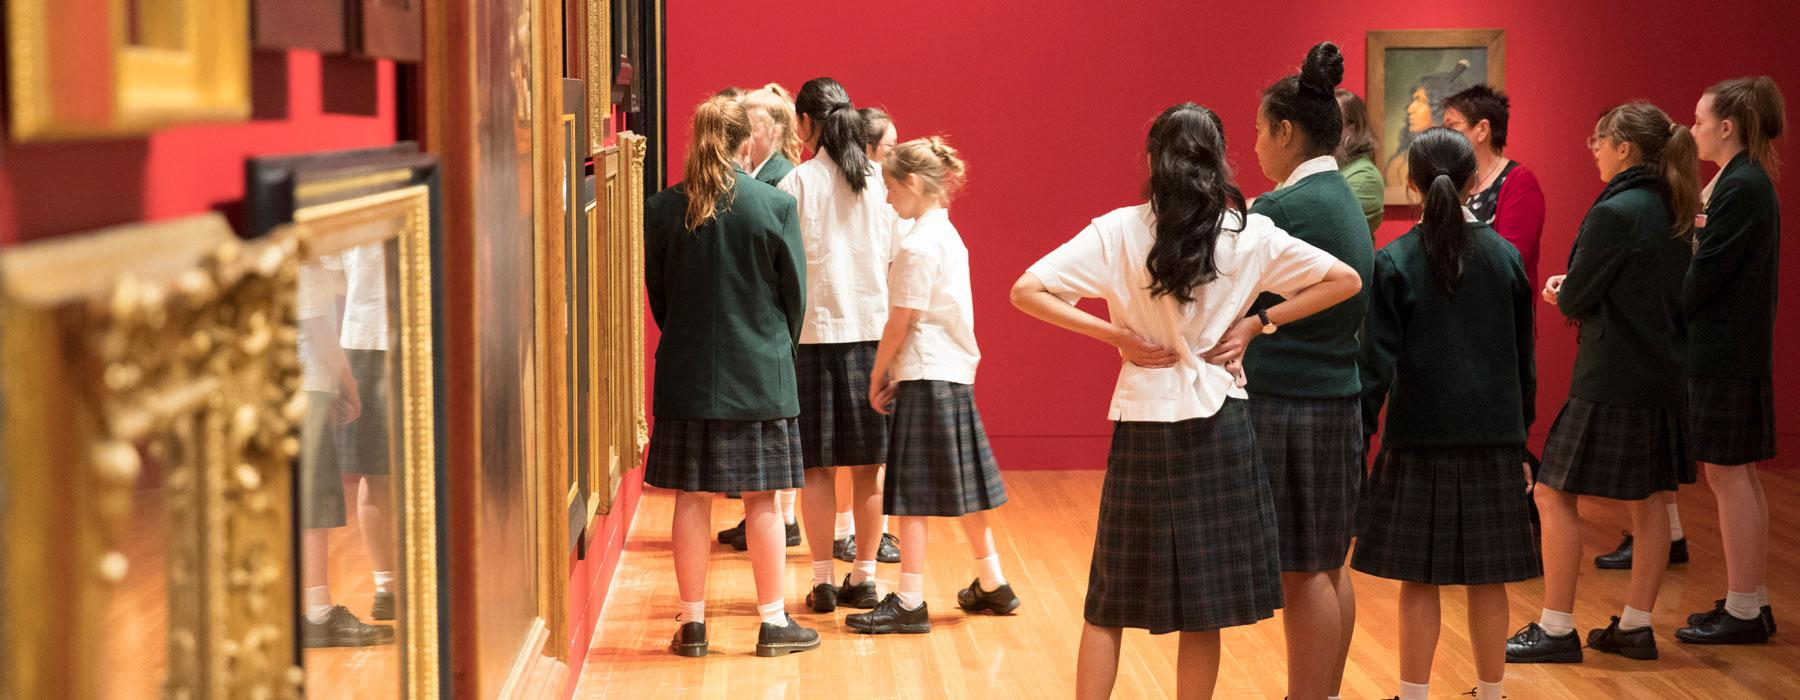 School girls look at historical art